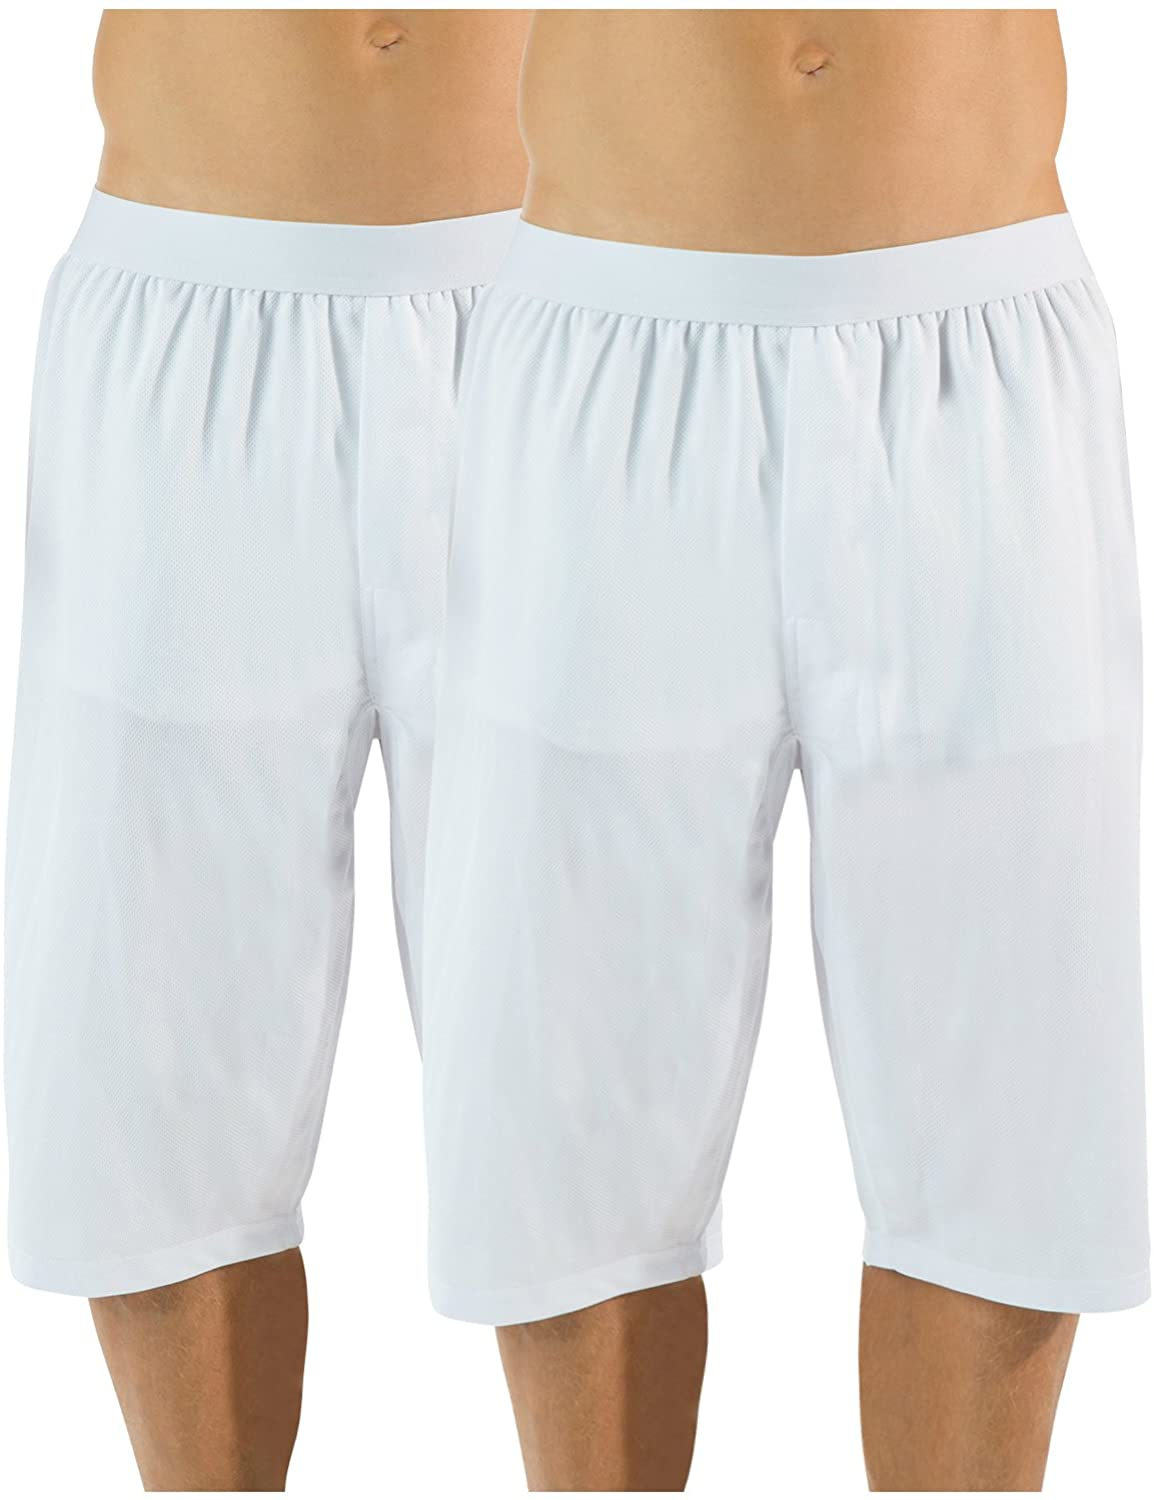 Casual Nights Men's Mesh Long Boxer Shorts 2 Pack - White